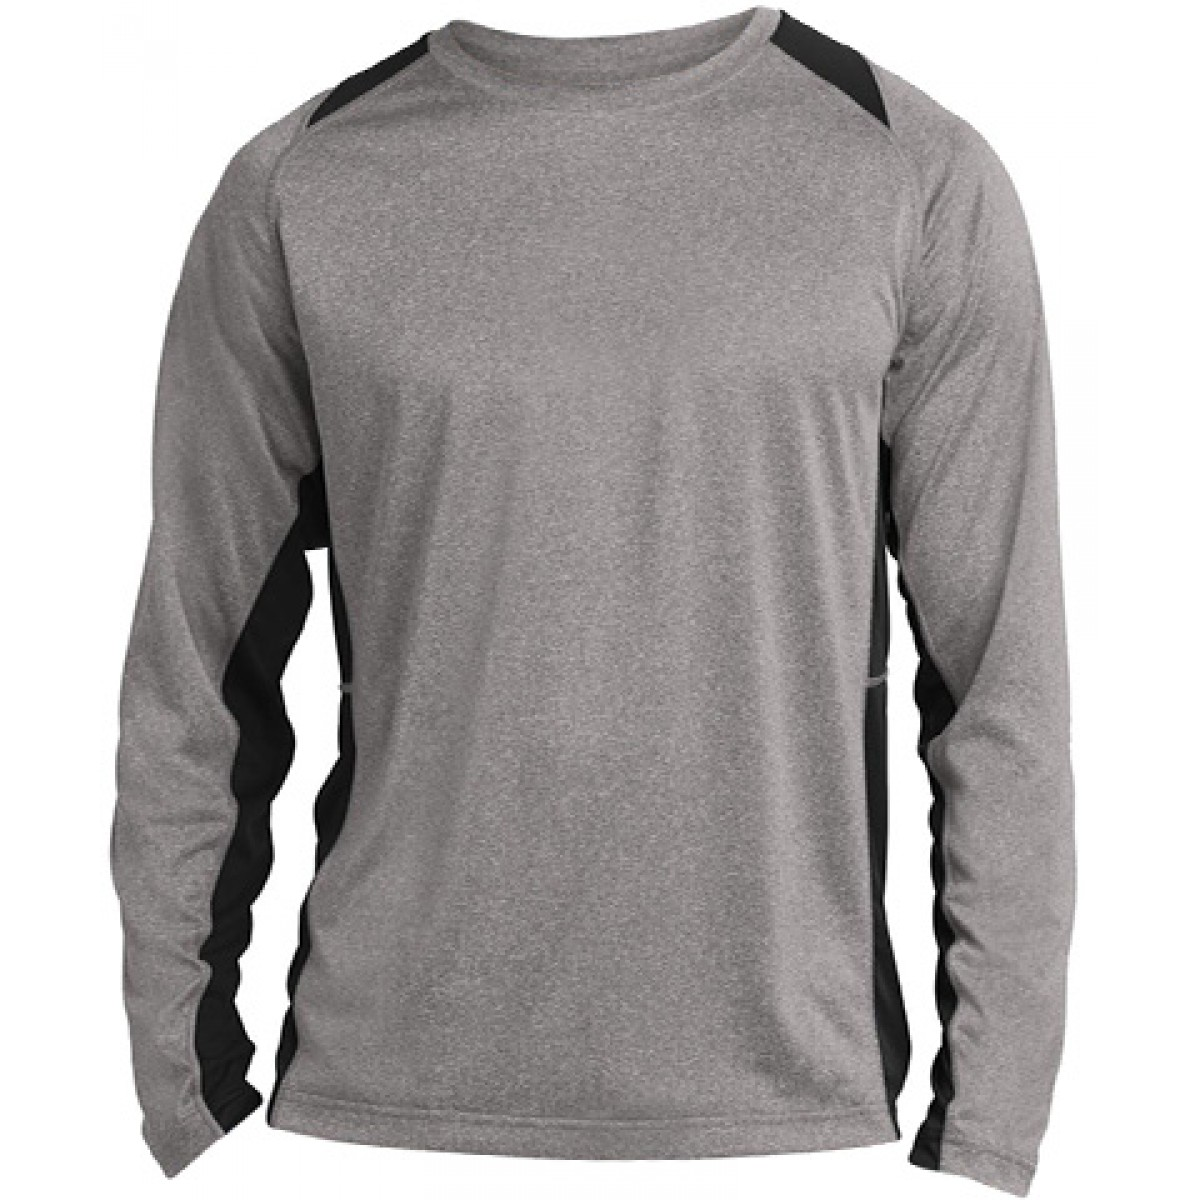 Long Sleeve Heather Colorblock Contender-Gray/Black-XS